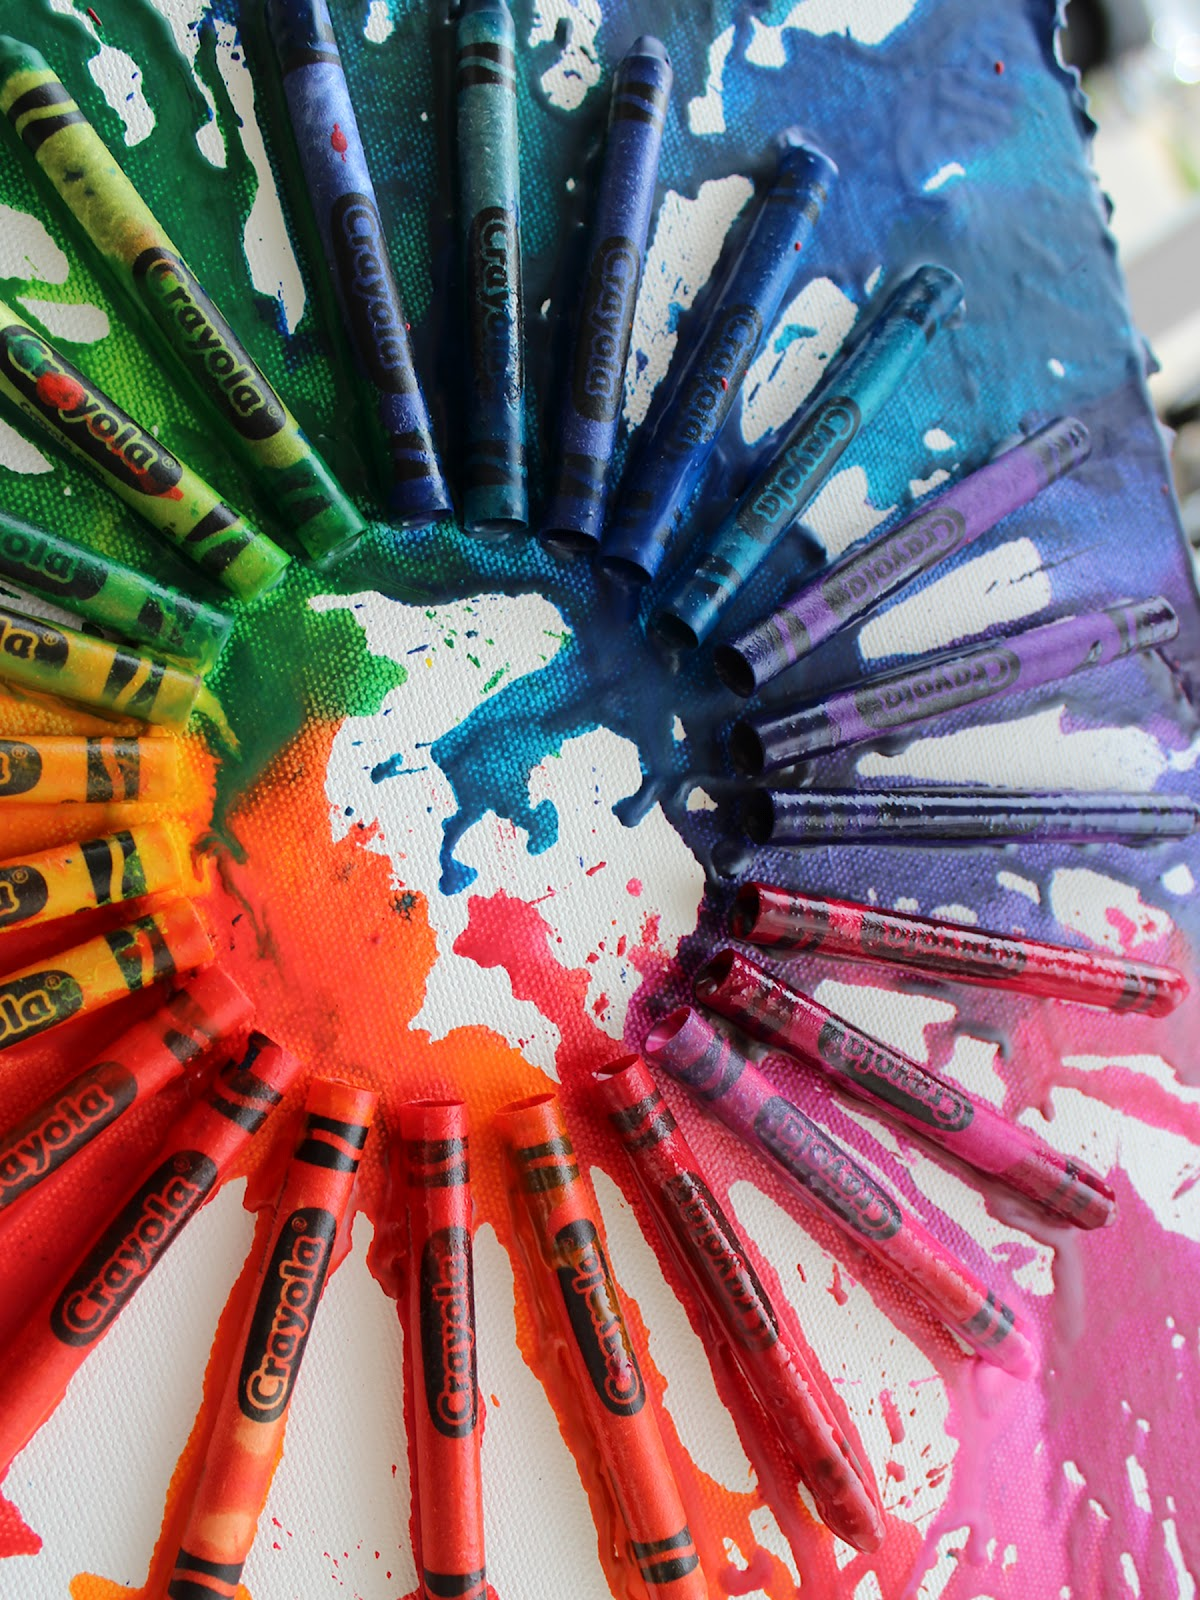 crayon projects Use up old crayons by making melted crayon art with the shavings make fun designs from different color schemes  more hands on kids activities to try art : diy.